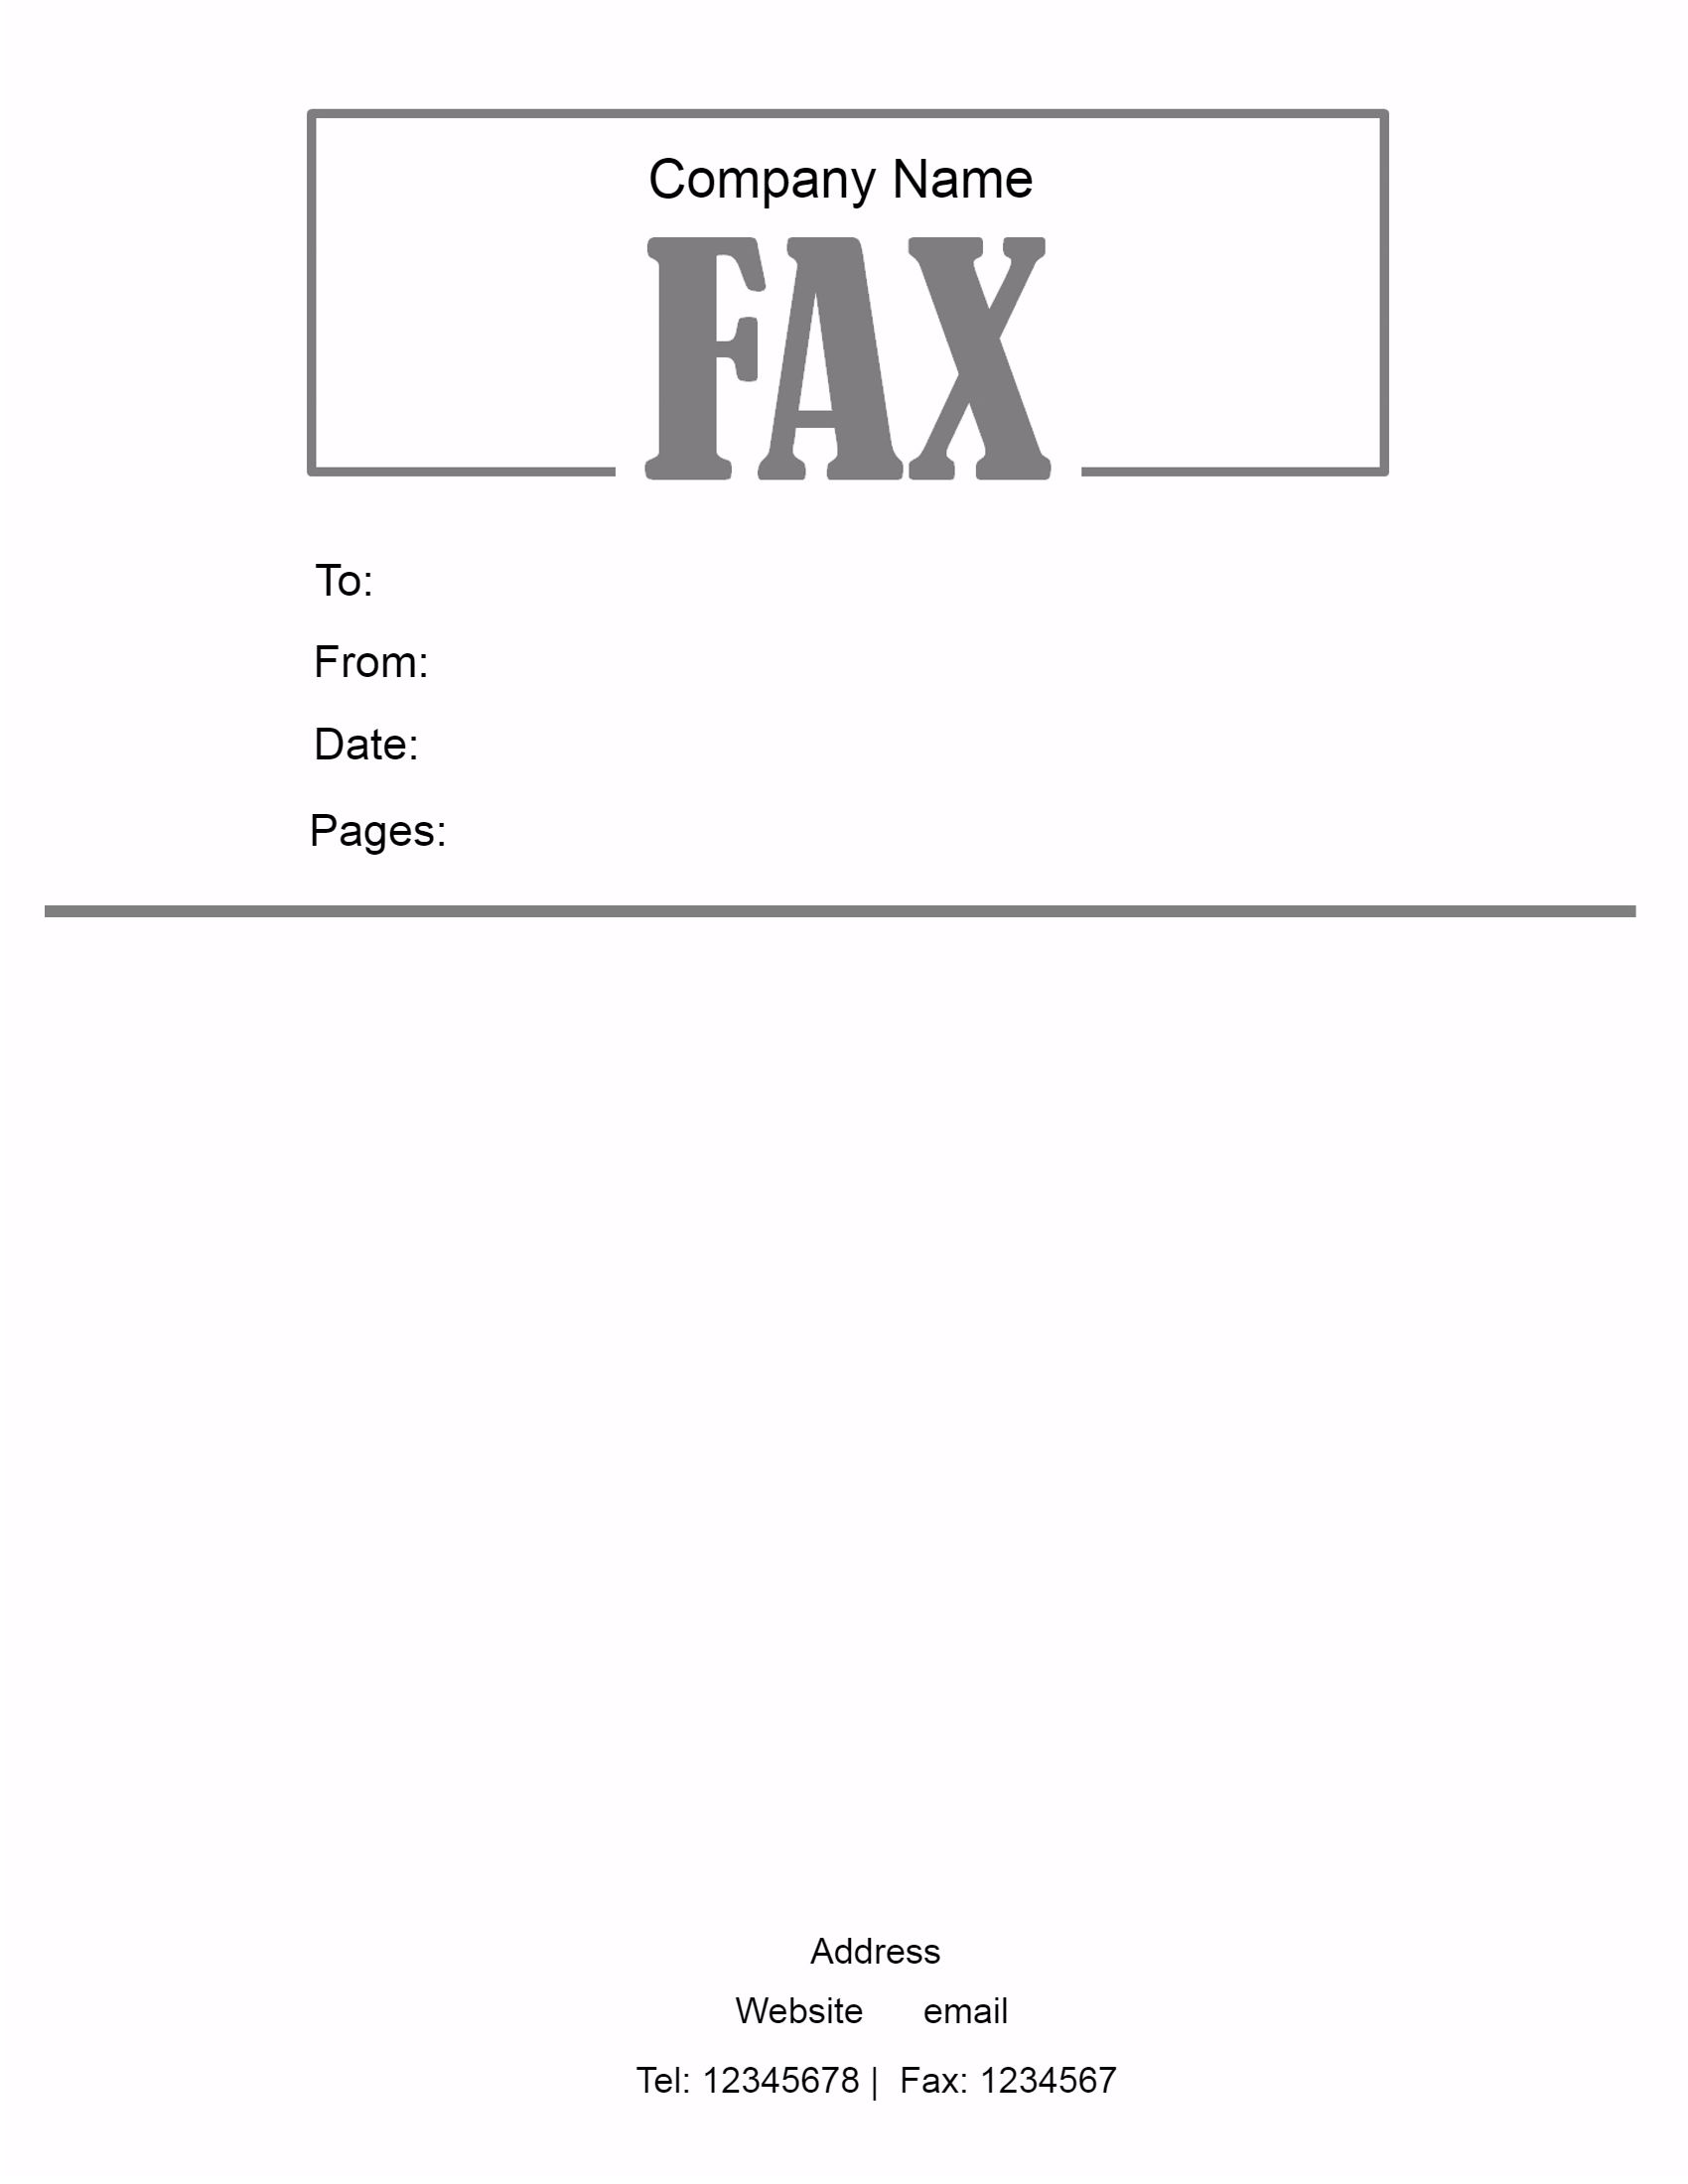 simple fax cover letter Fax letter cover sheet best images of free fax cover sheet sensitive information fax cover sheet at freefaxcoversheetsnet fax cover sheet for resume free cover letter examples for resume resume cover sheets samples create professional resumes online fax cover sheet free cover fax sheet for.